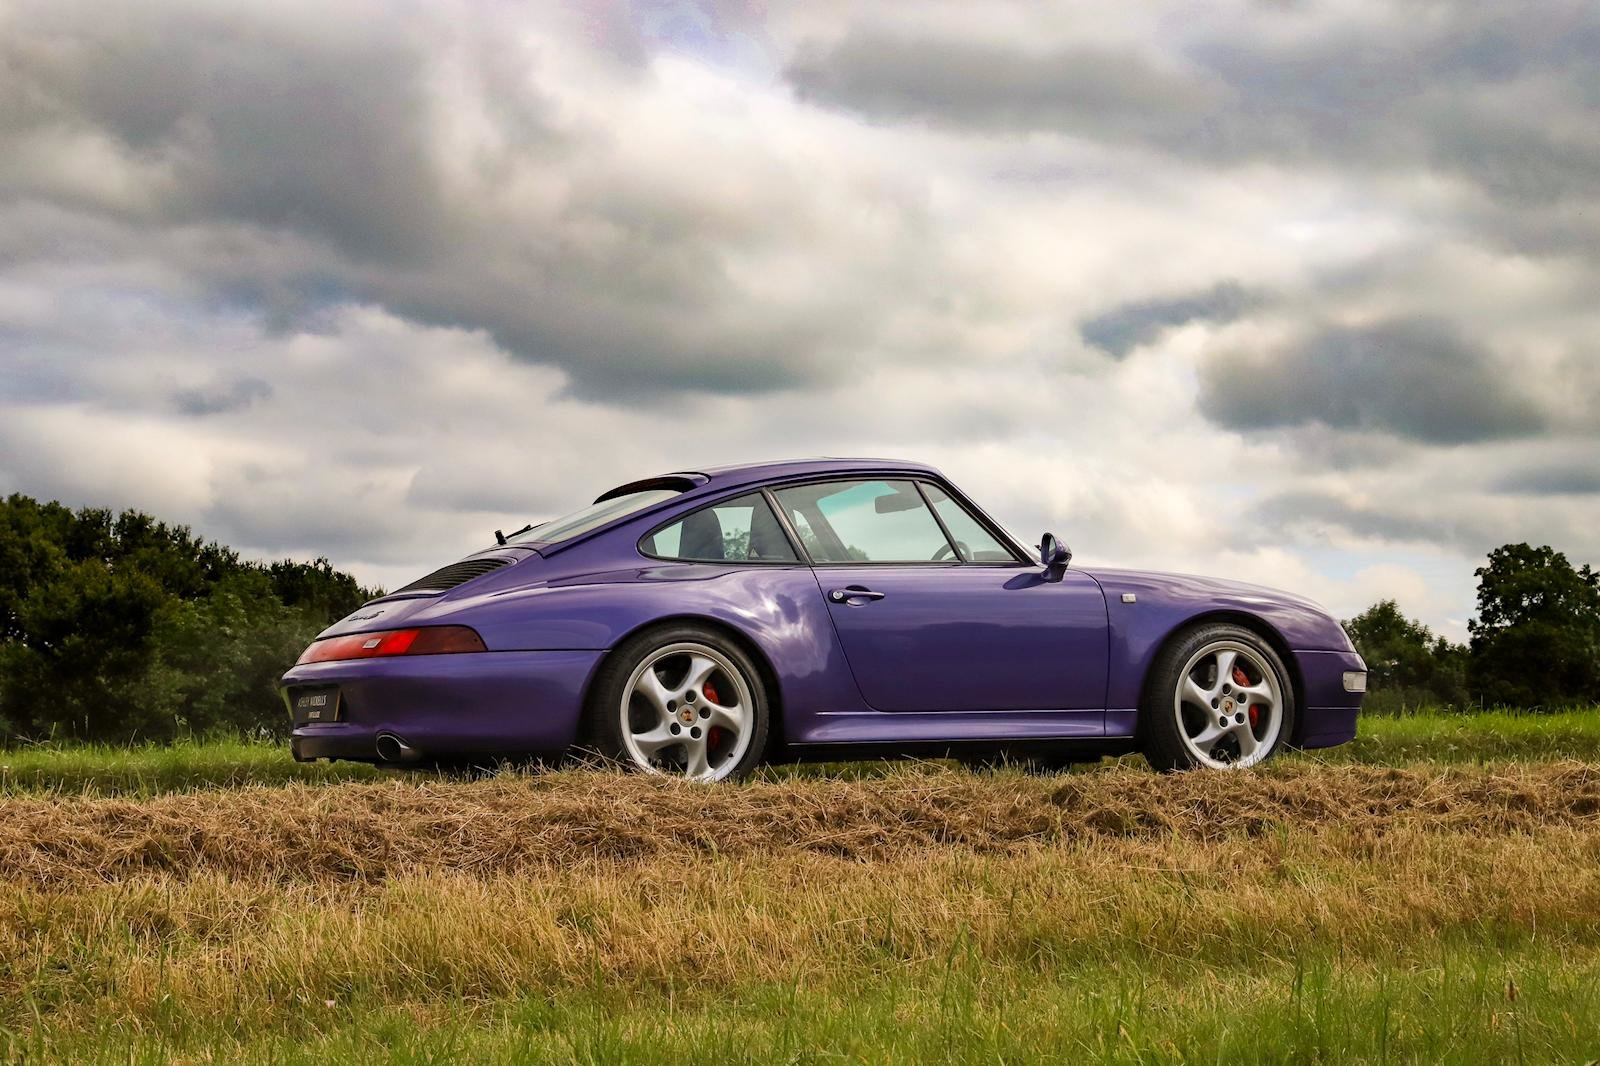 1998 RARE 993 LOW MILEAGE MANUAL C 4S - SPECTACULAR VIOLET BLUE   For Sale (picture 1 of 6)